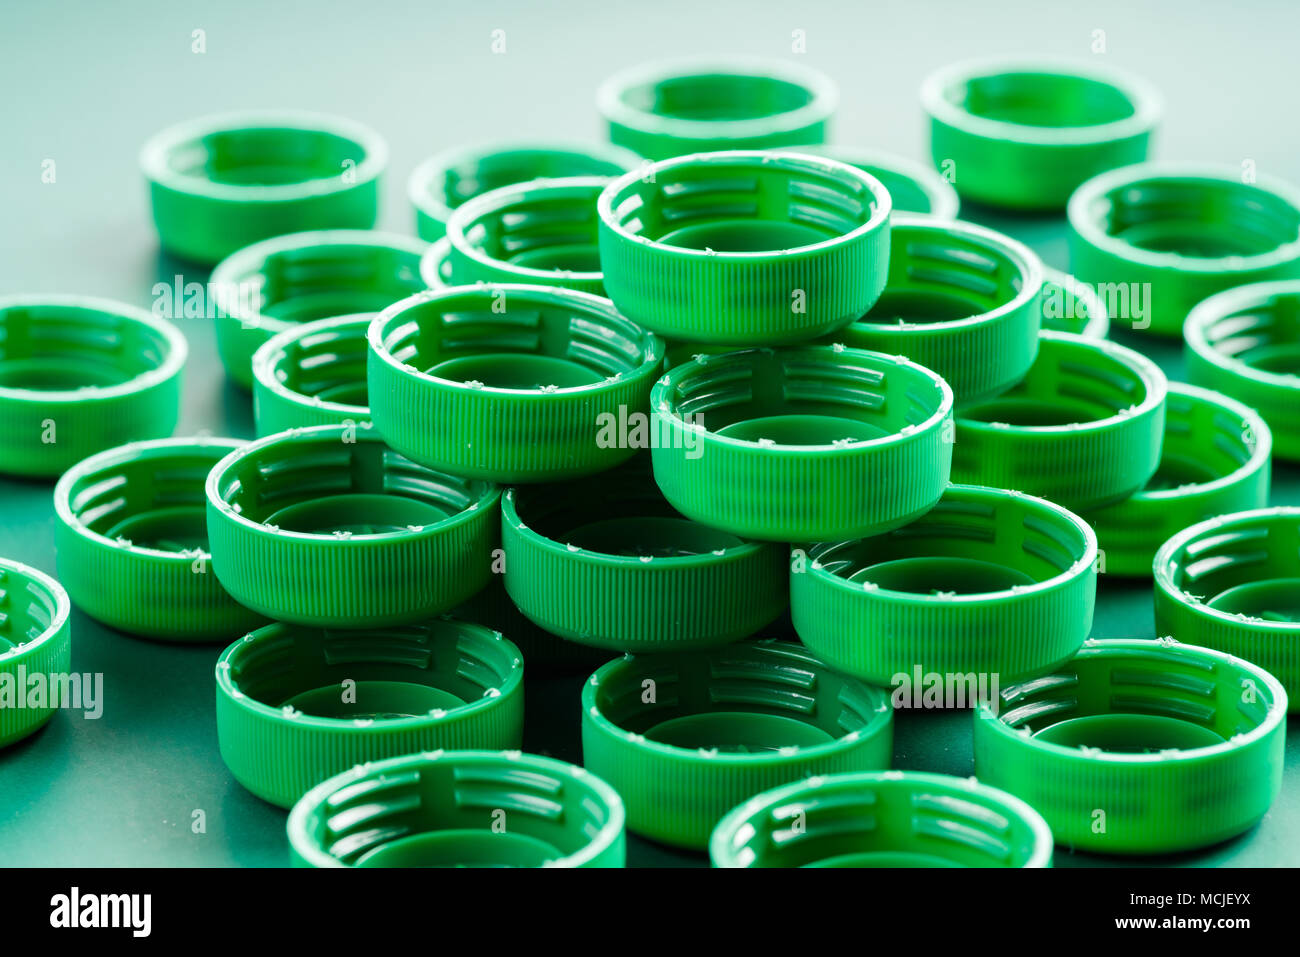 colored caps from plastic bottles - Stock Image